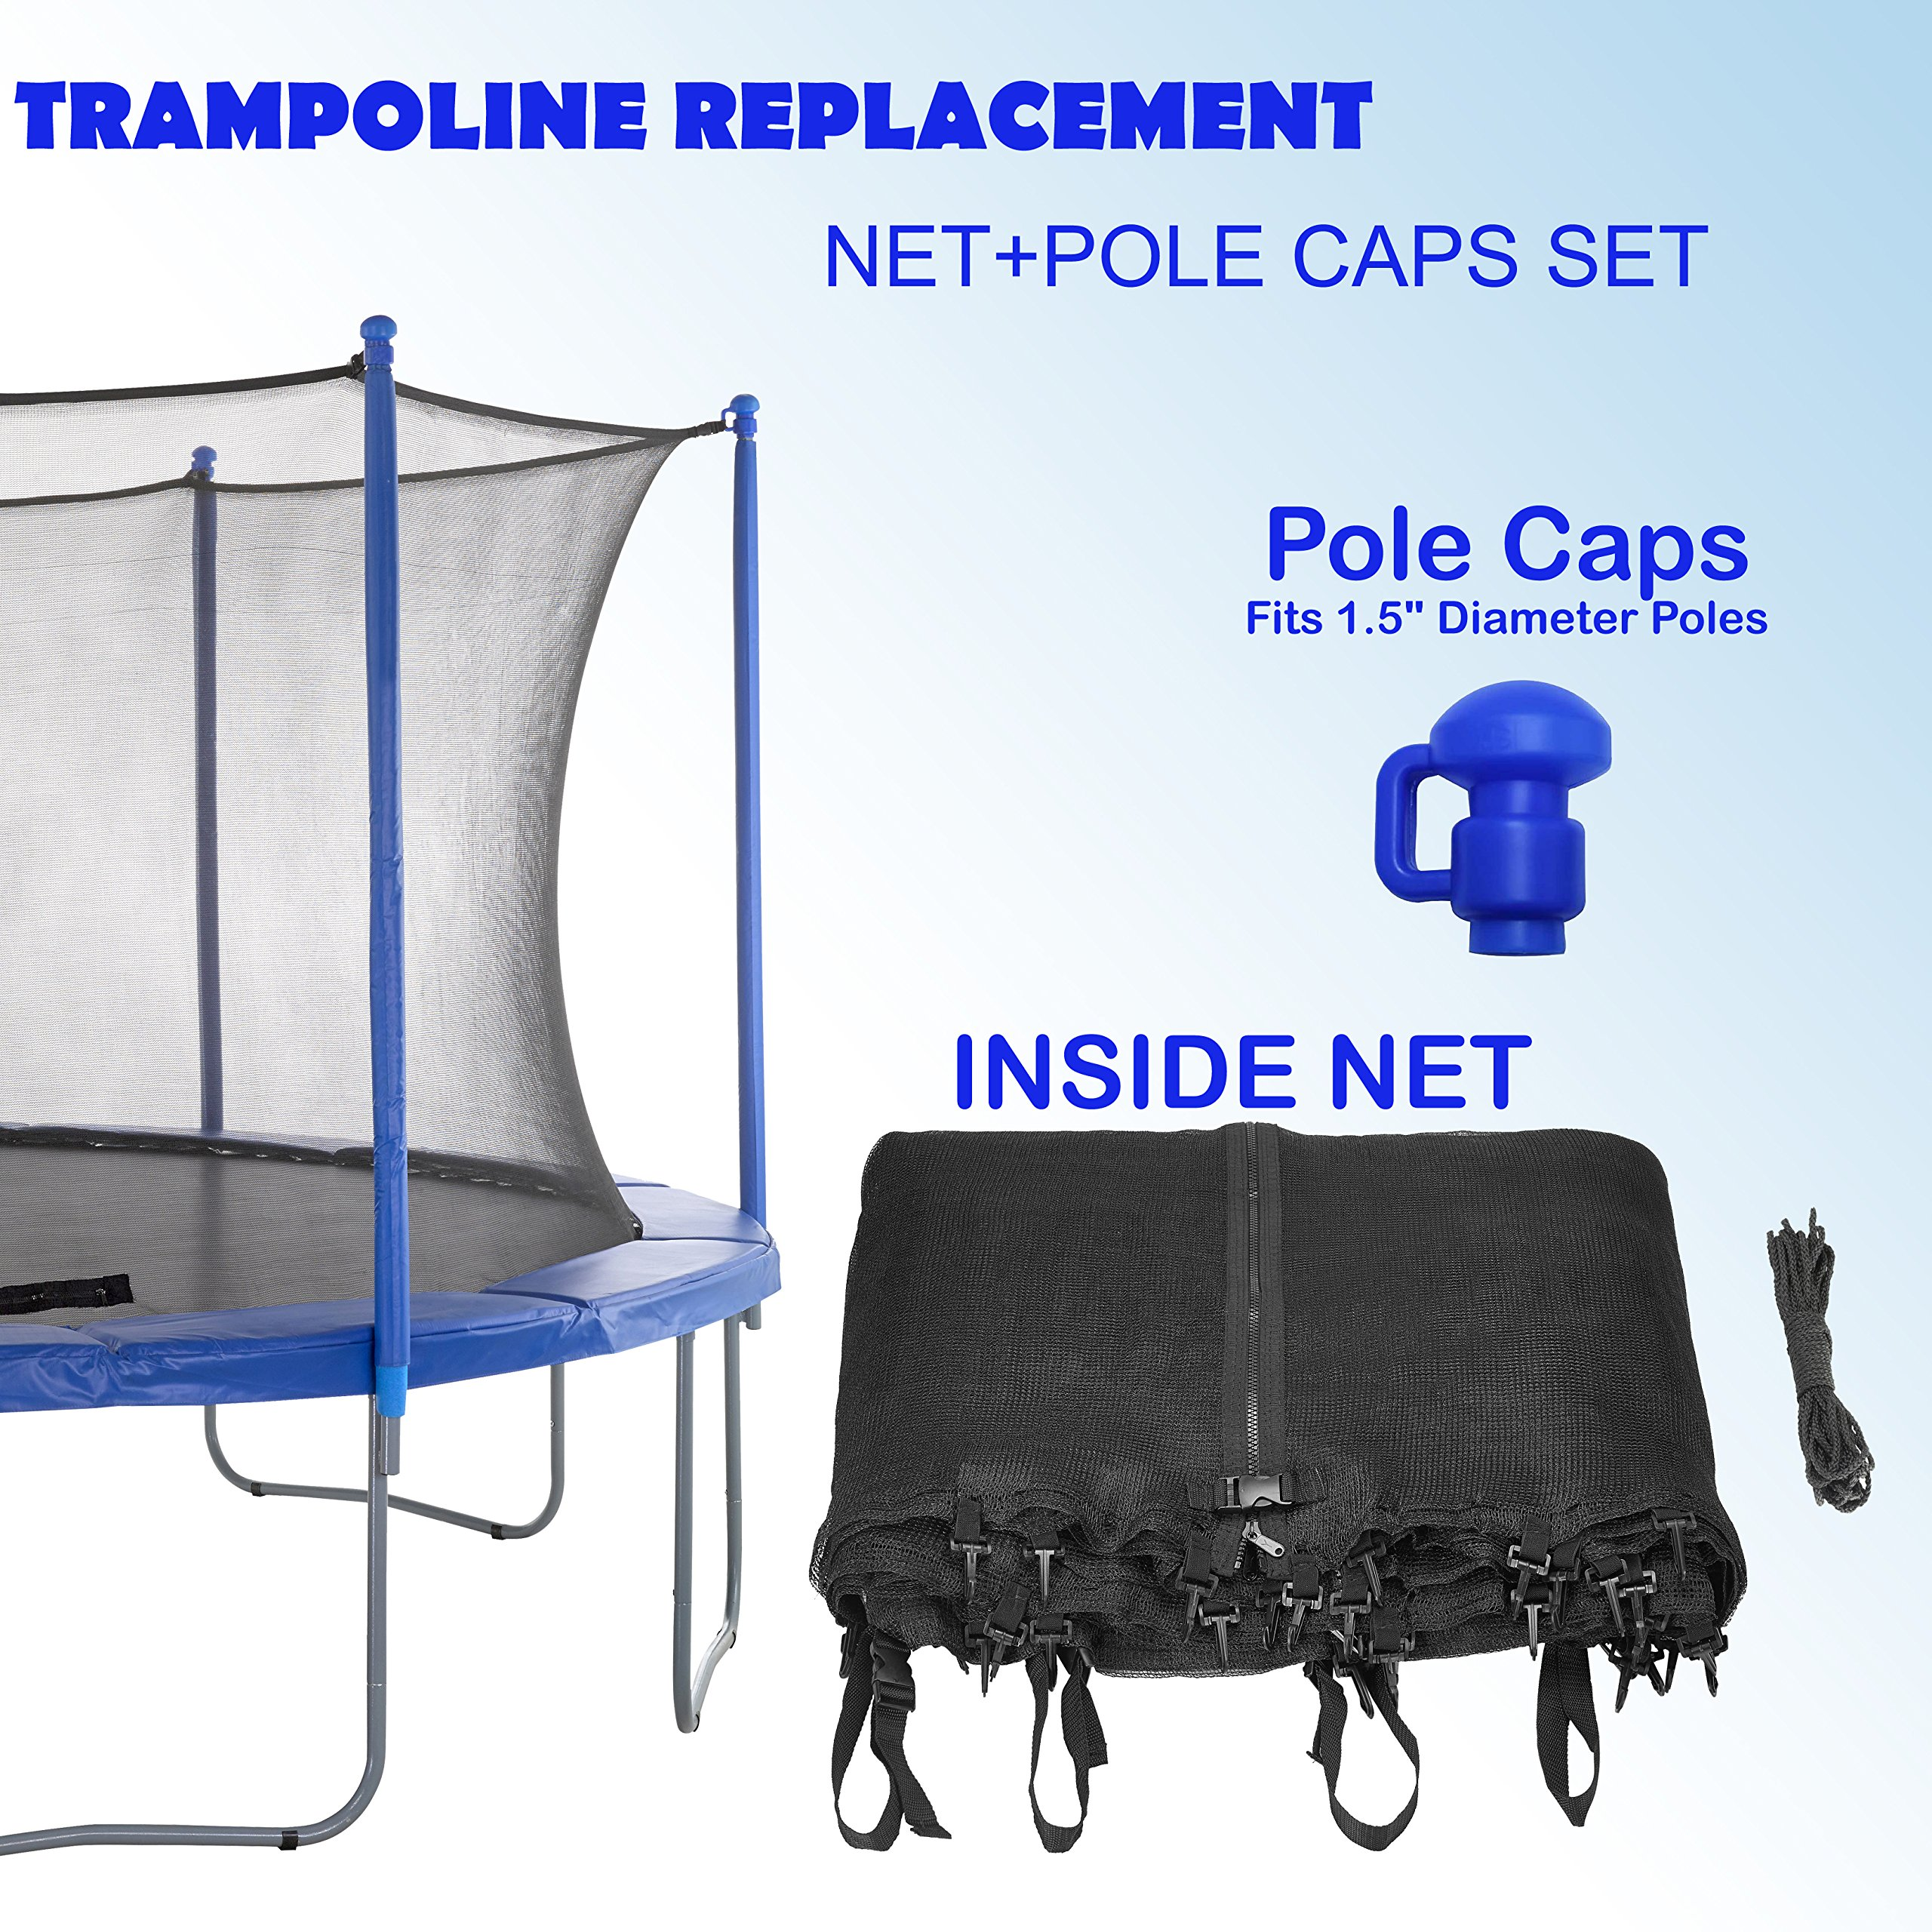 Upper Bounce Super Net & Pole Cap Set Fits For 14' Round Trampoline Frames Using 8 Poles